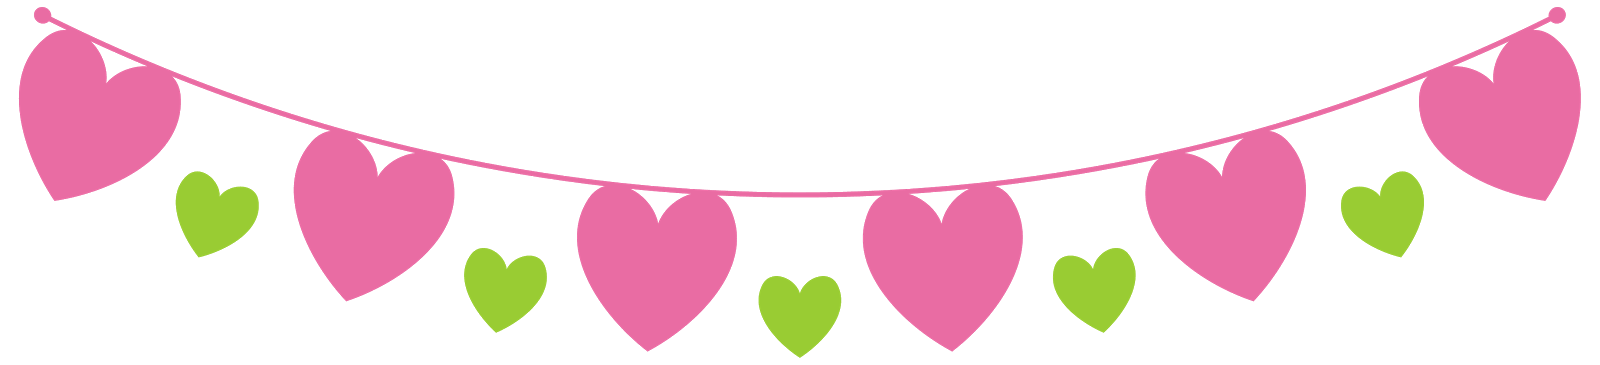 Whimsy heart clipart banner transparent stock ♥ it's a berry sweet life ♥: ~i heart you~ banner transparent stock